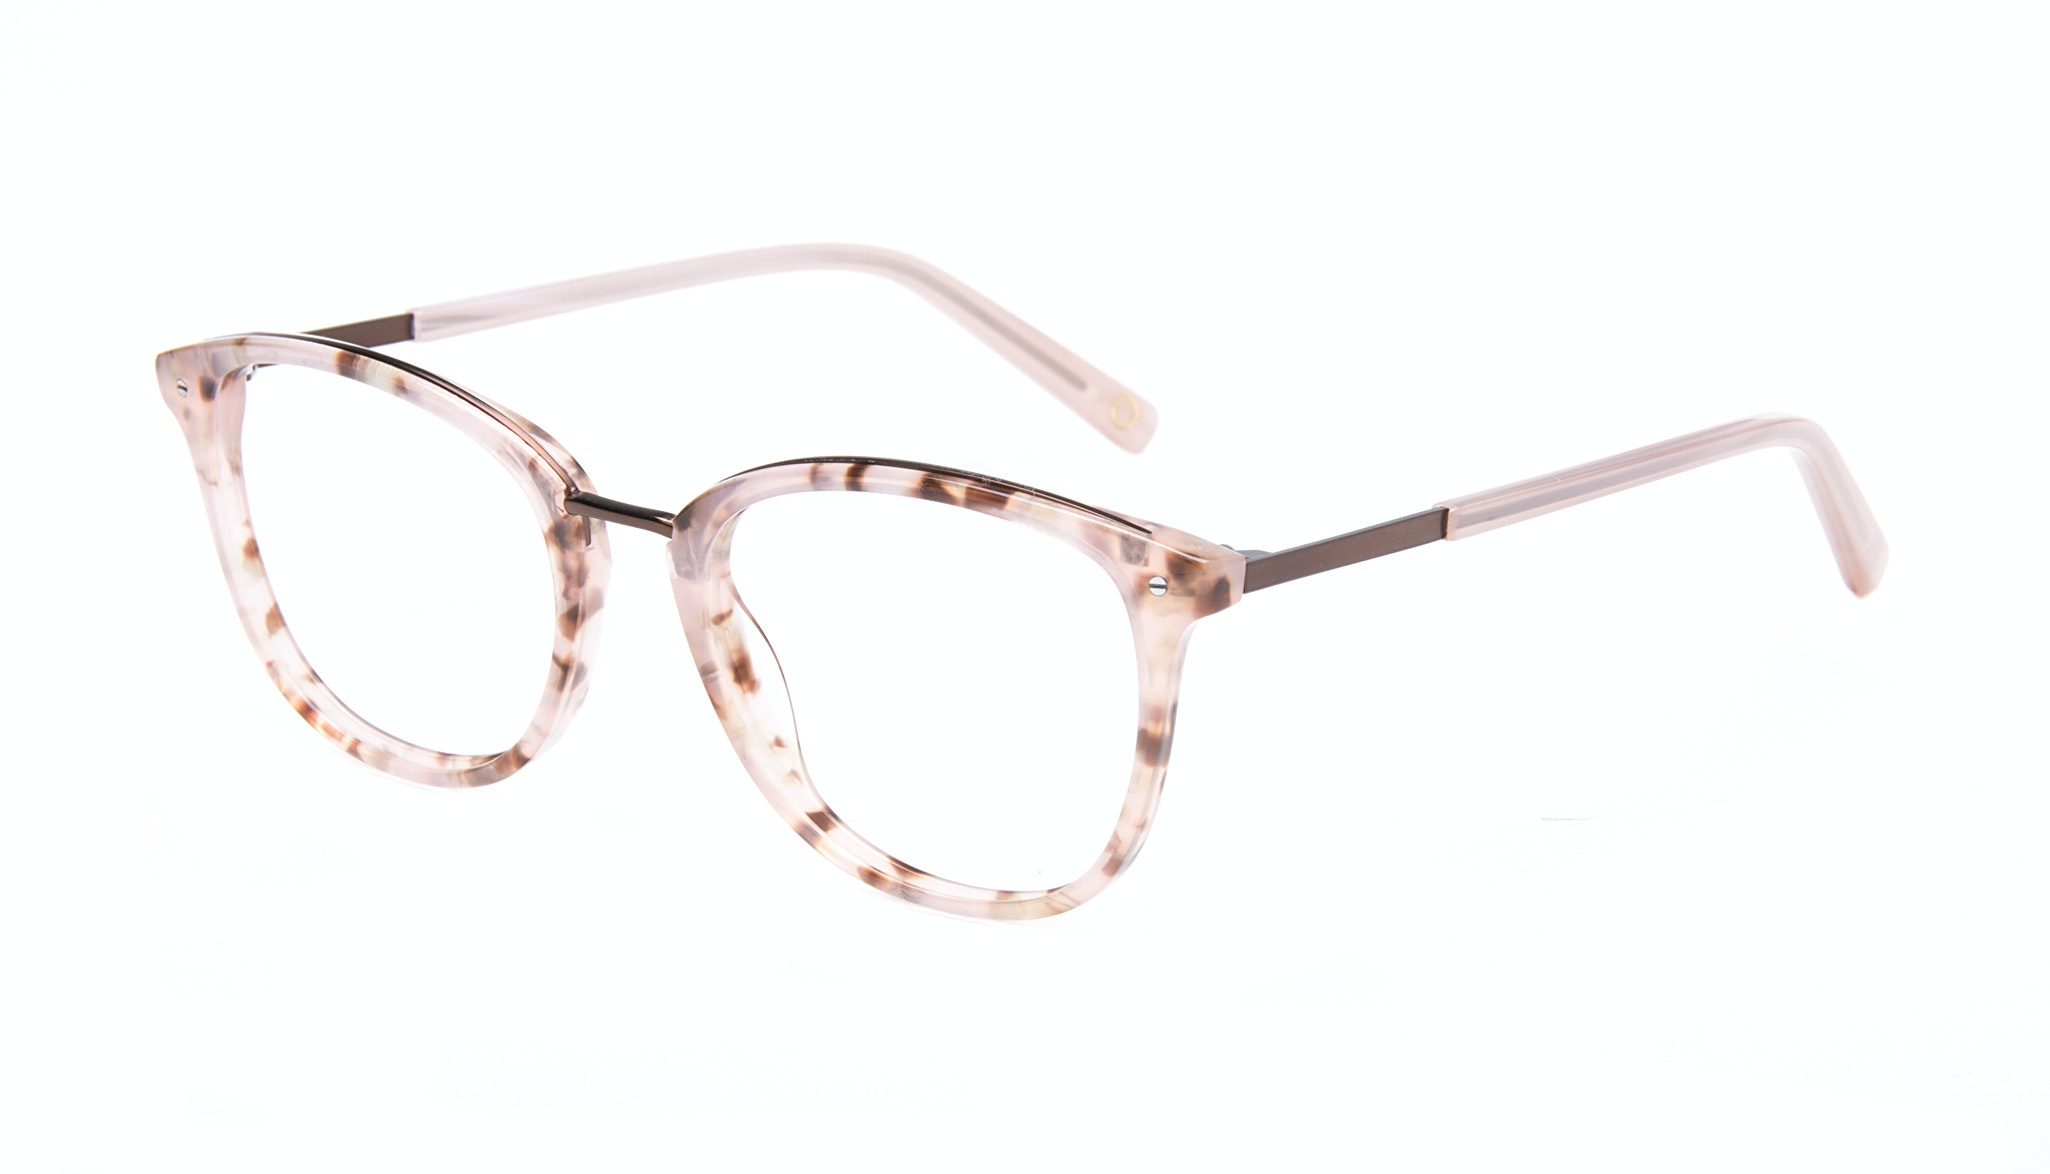 Affordable Fashion Glasses Square Round Eyeglasses Women Bella Blush Tortie Tilt